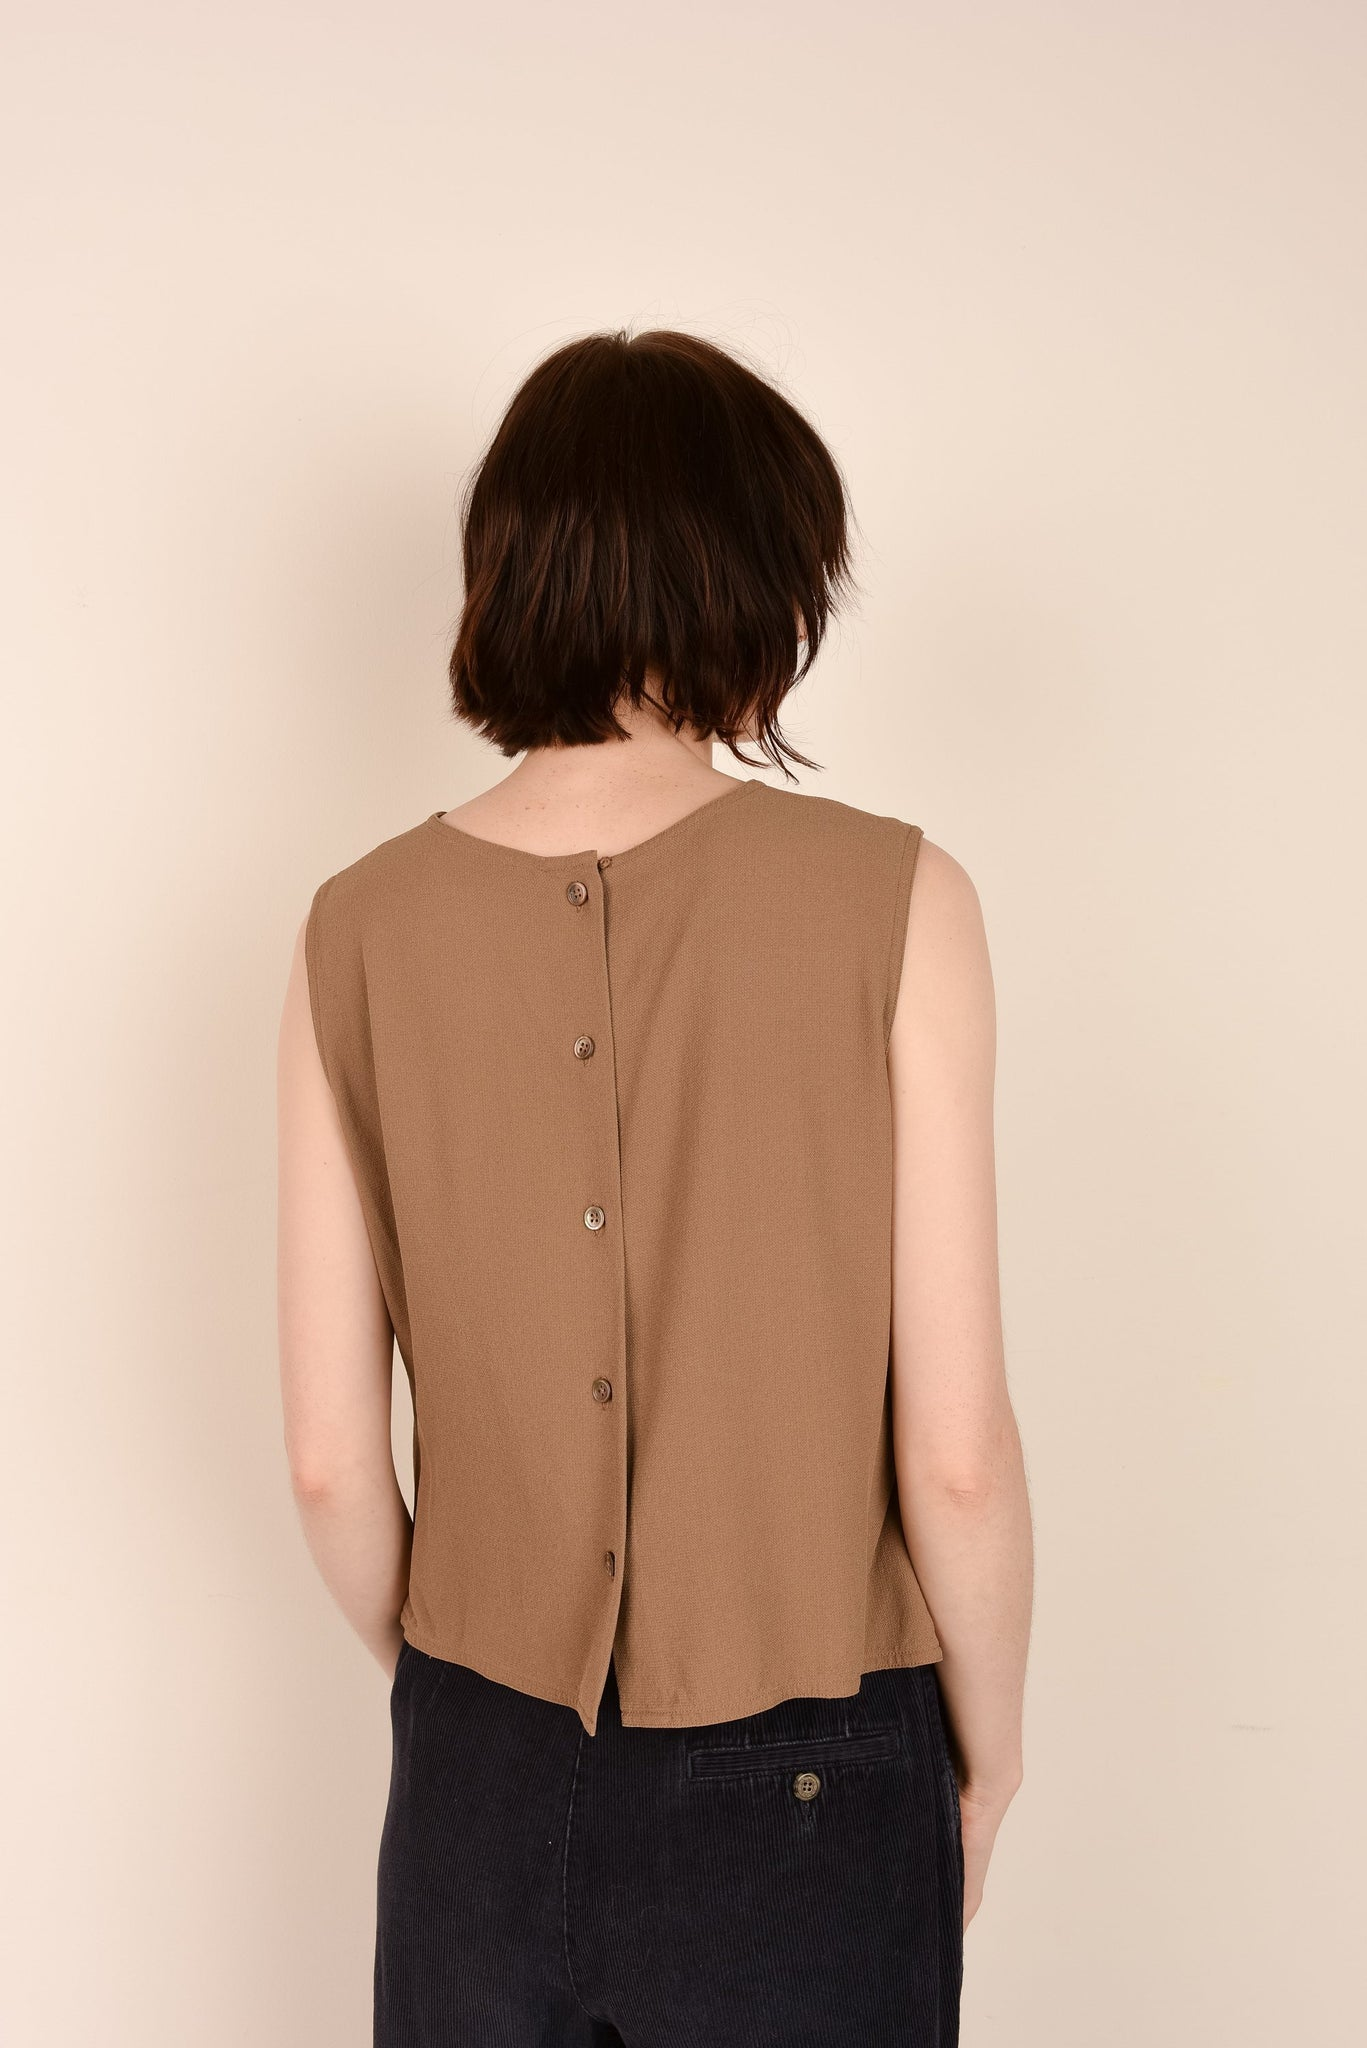 Vintage Butterscotch Silk Sleeveless Blouse / S - Closed Caption